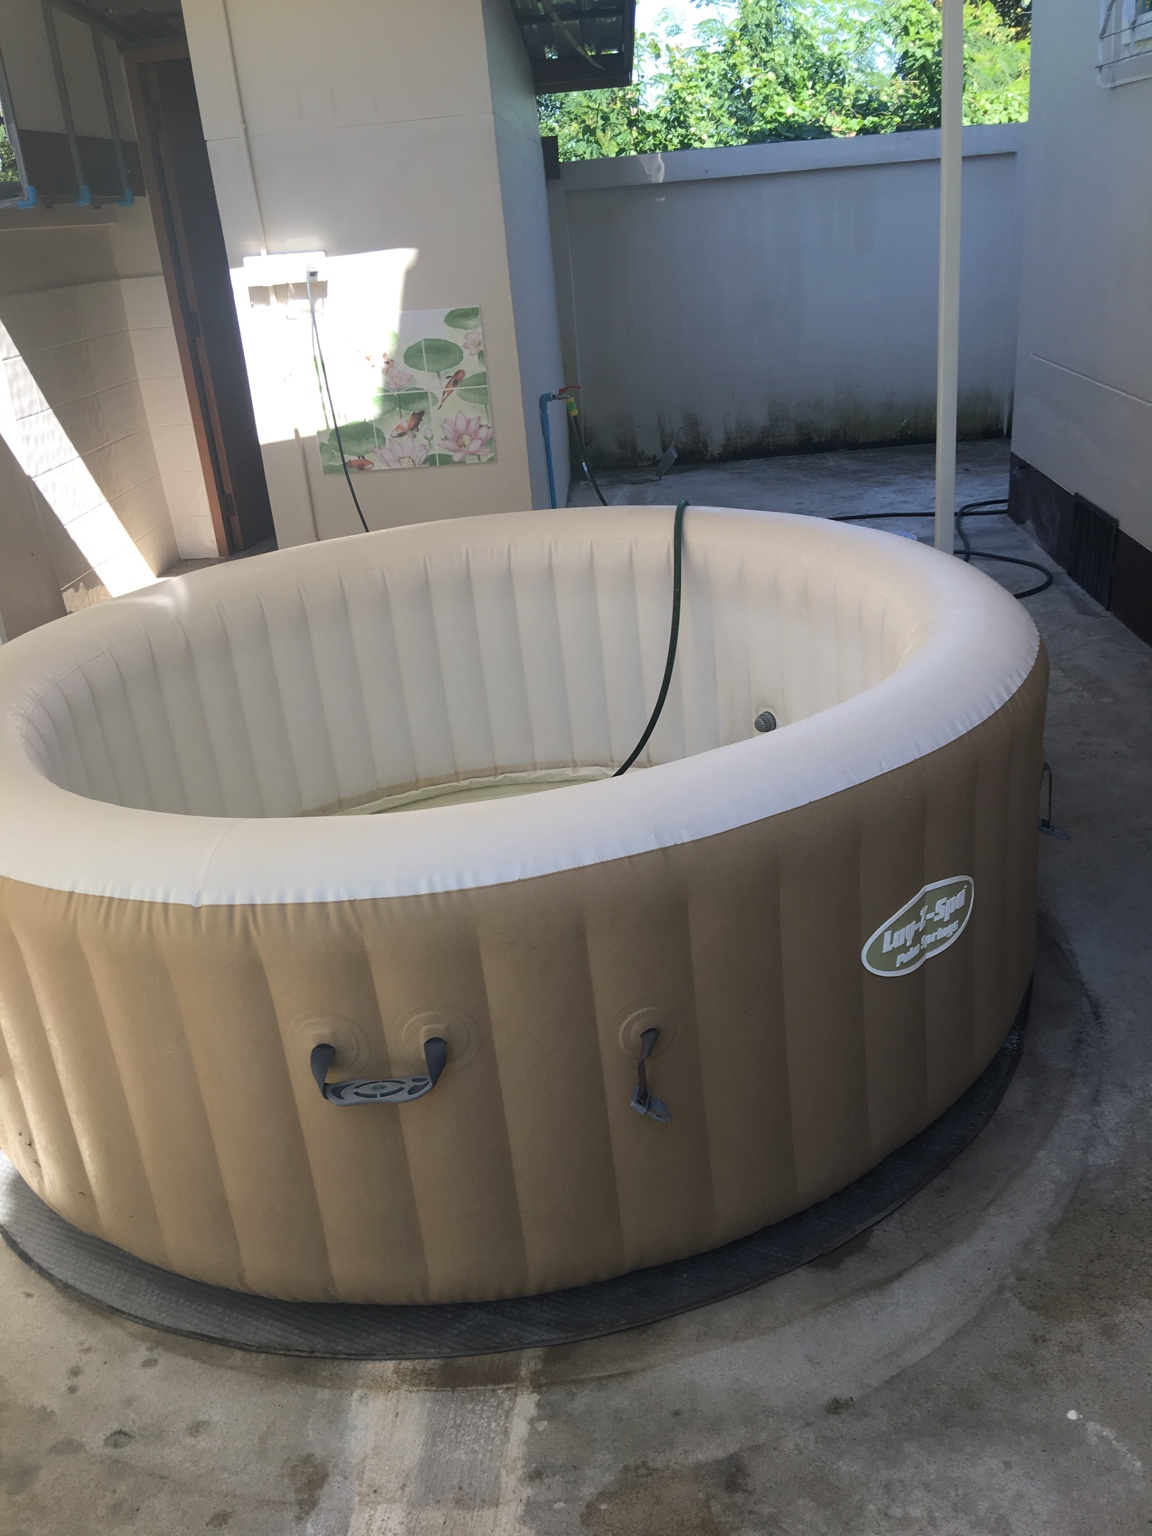 selling jacuzzi lazy z spa palm springs udon thani thailand forum udon thani thailand. Black Bedroom Furniture Sets. Home Design Ideas